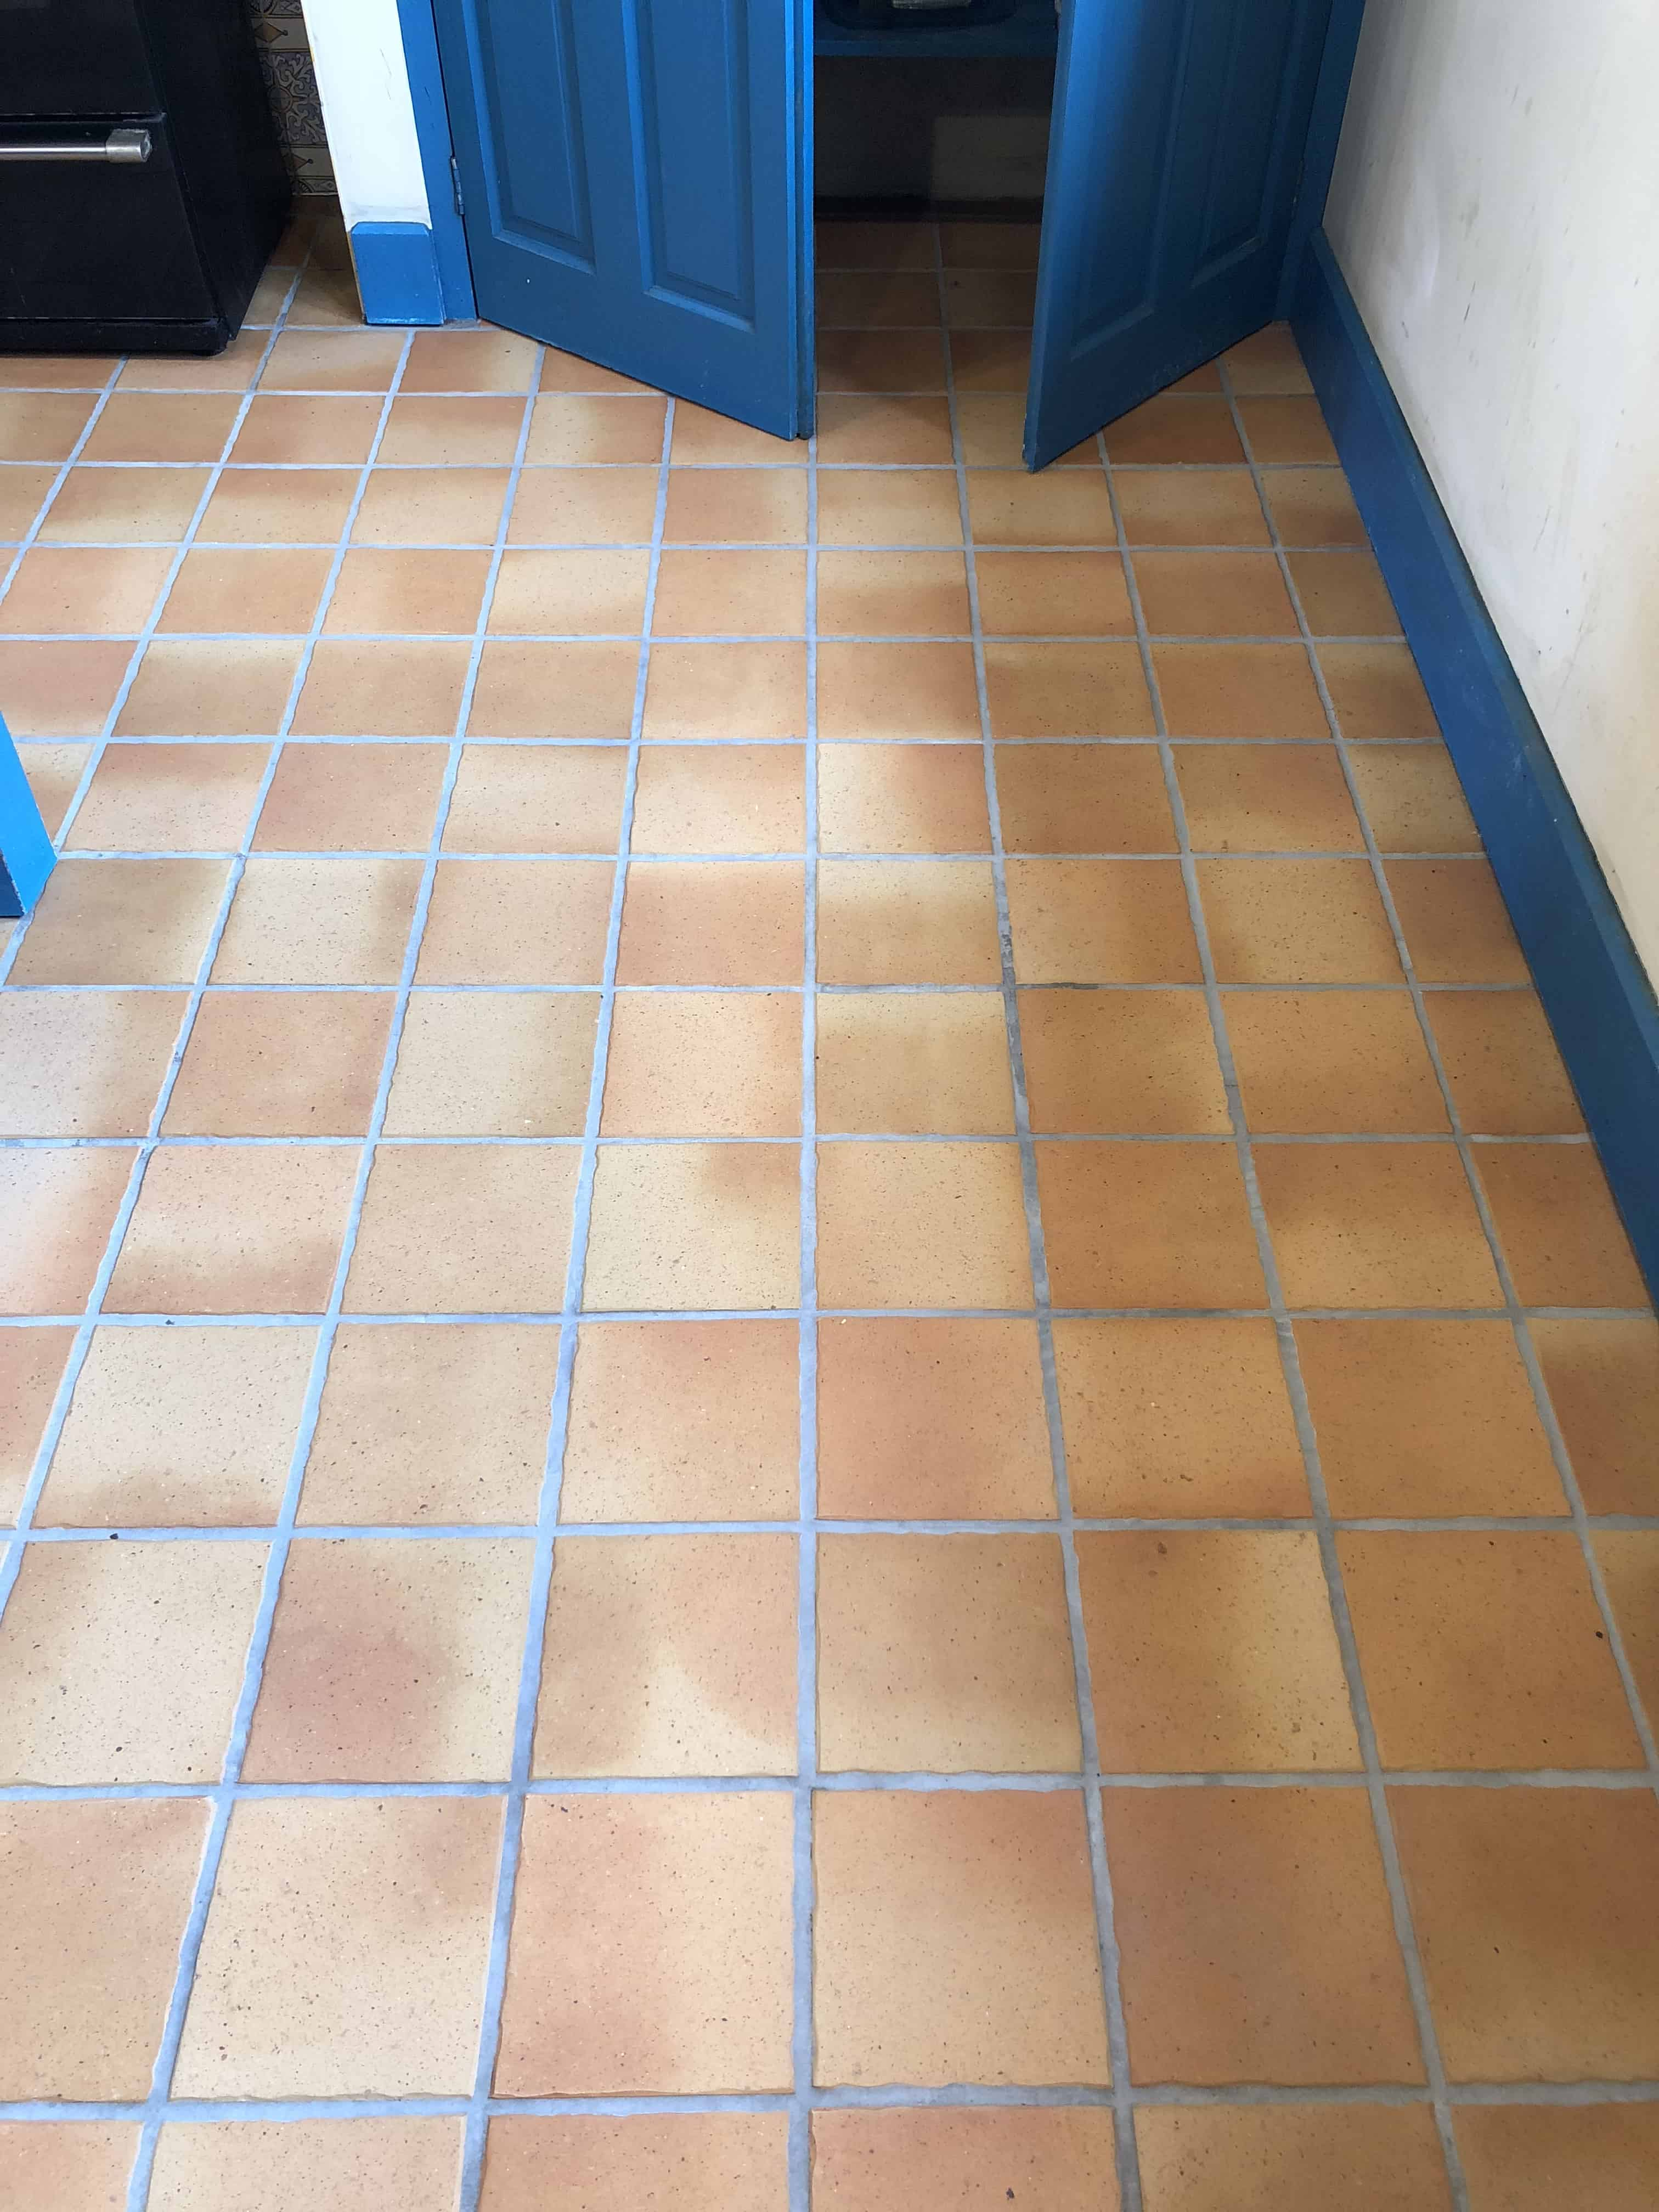 Porcelain Tiled Kitchen Floor After Cleaning Ely